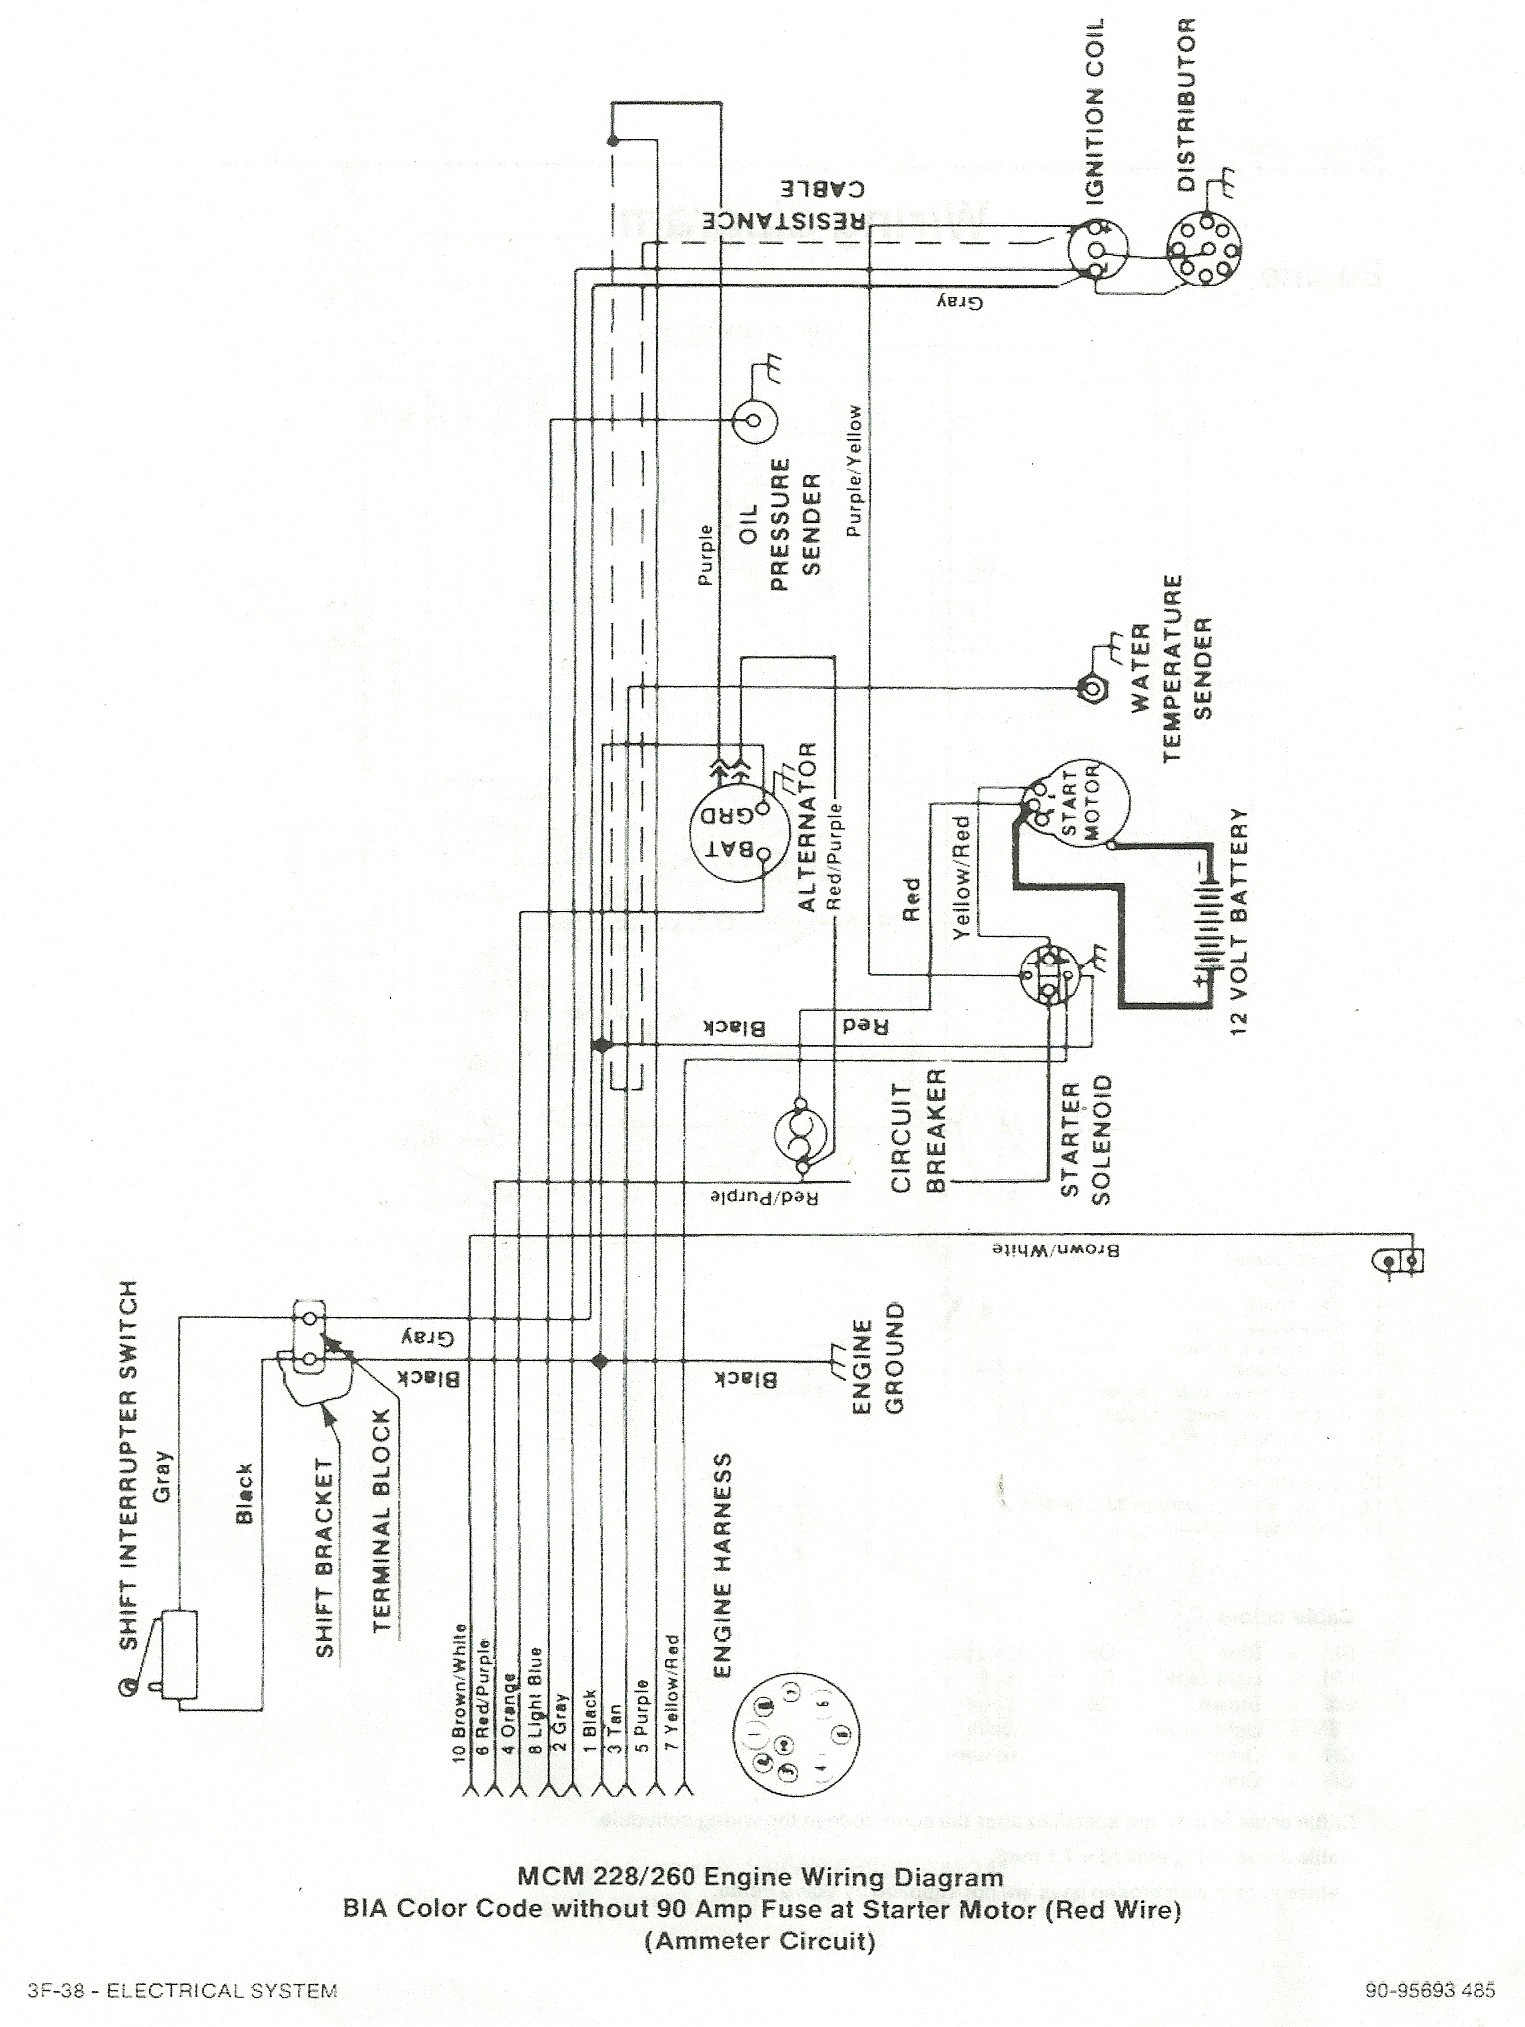 Wiring Diagram Mercruiser Alternator New Car 165 Mercruiser Starter Wiring  Diagram Wiring Harness and